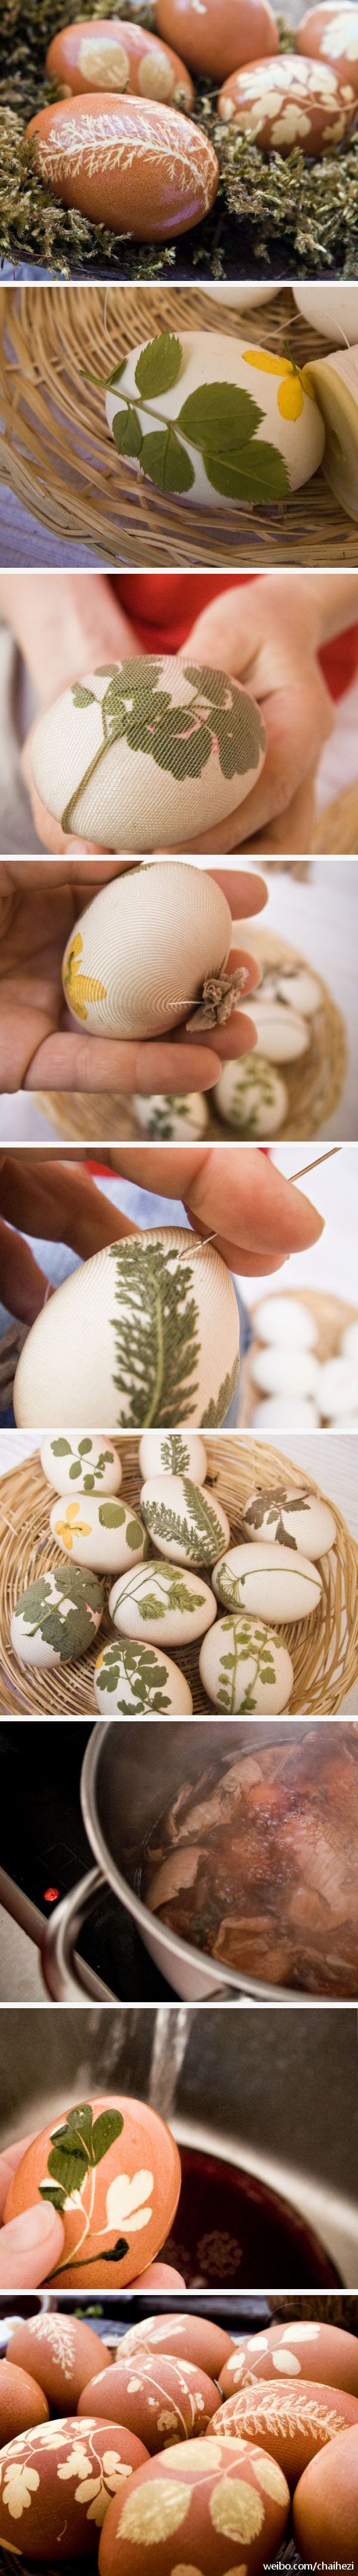 Awesome dyed eggs